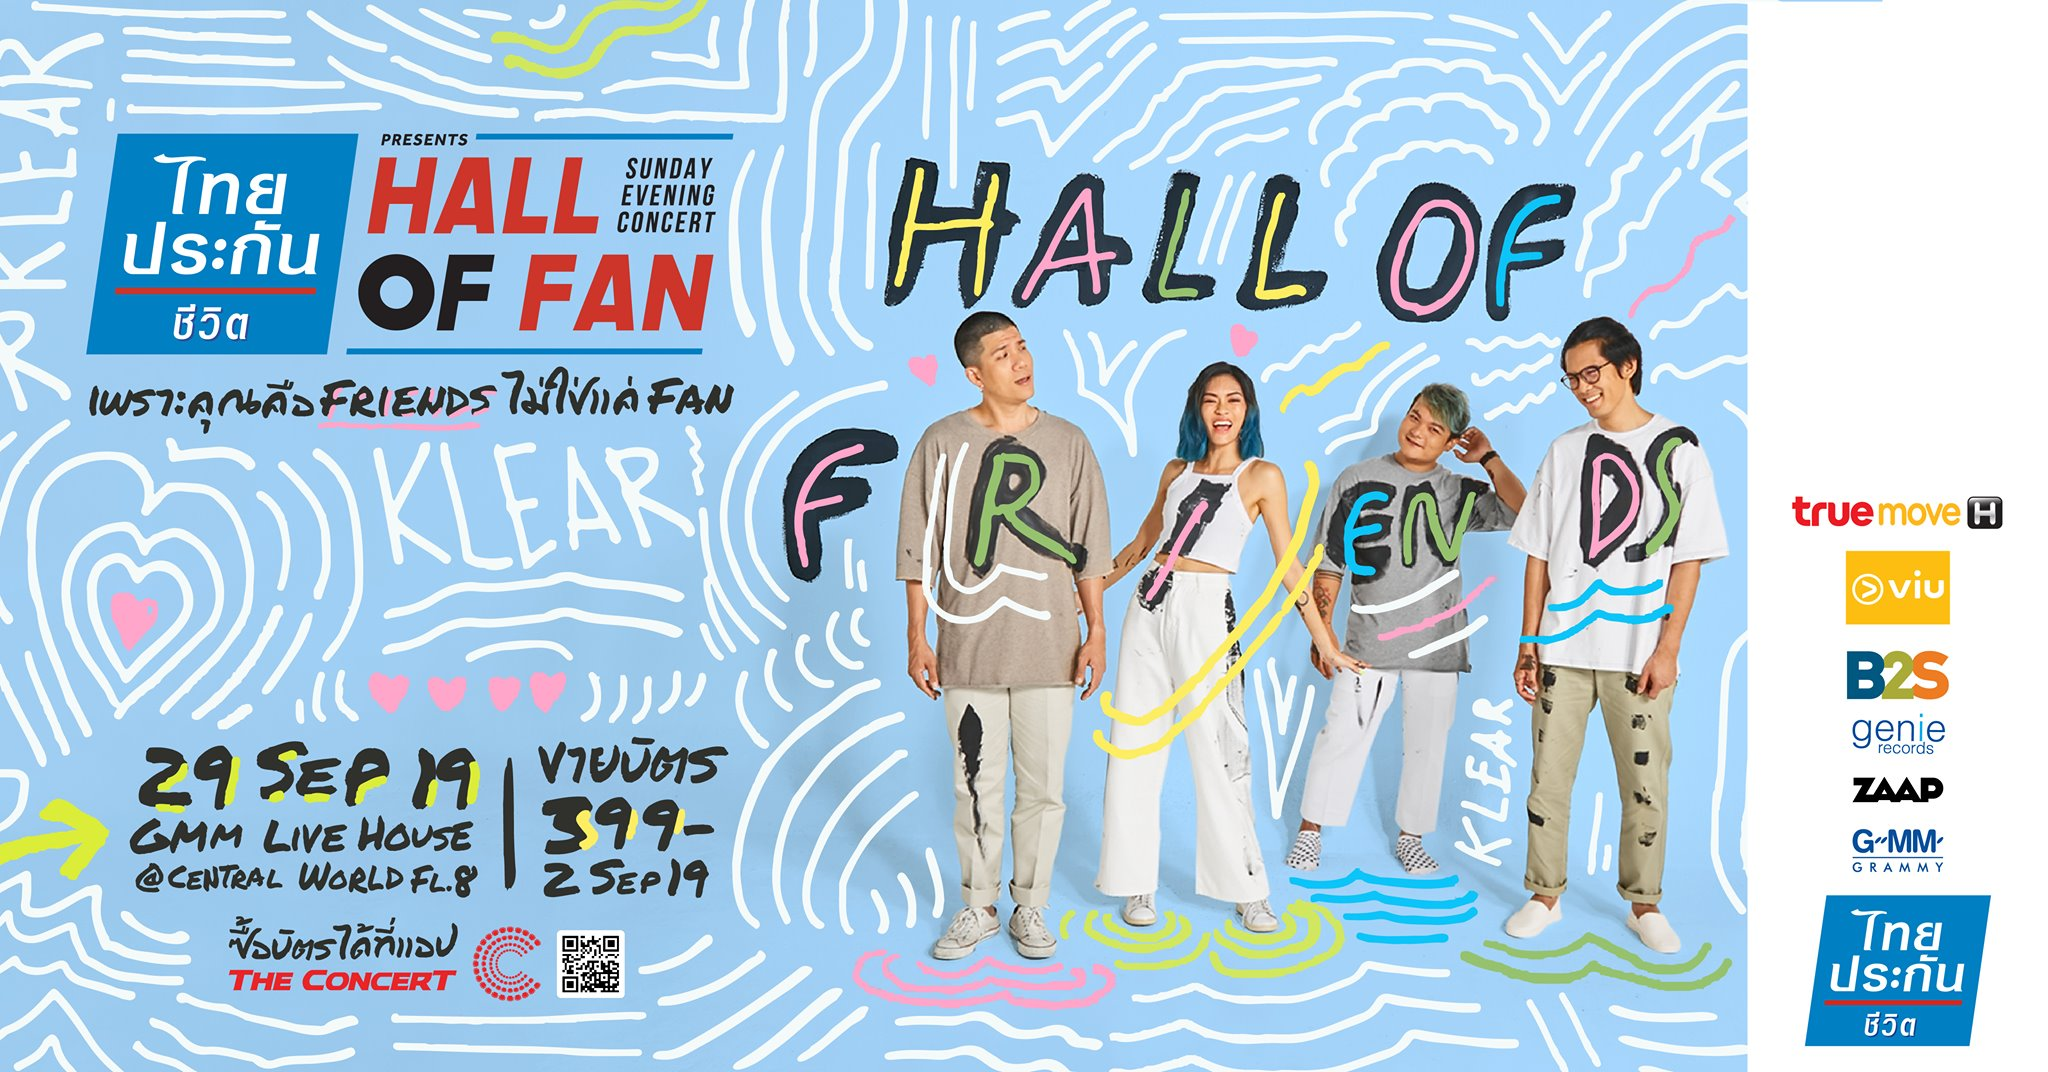 Hall of Fan, Sunday Evening Concert, Gmm Live House 29 September